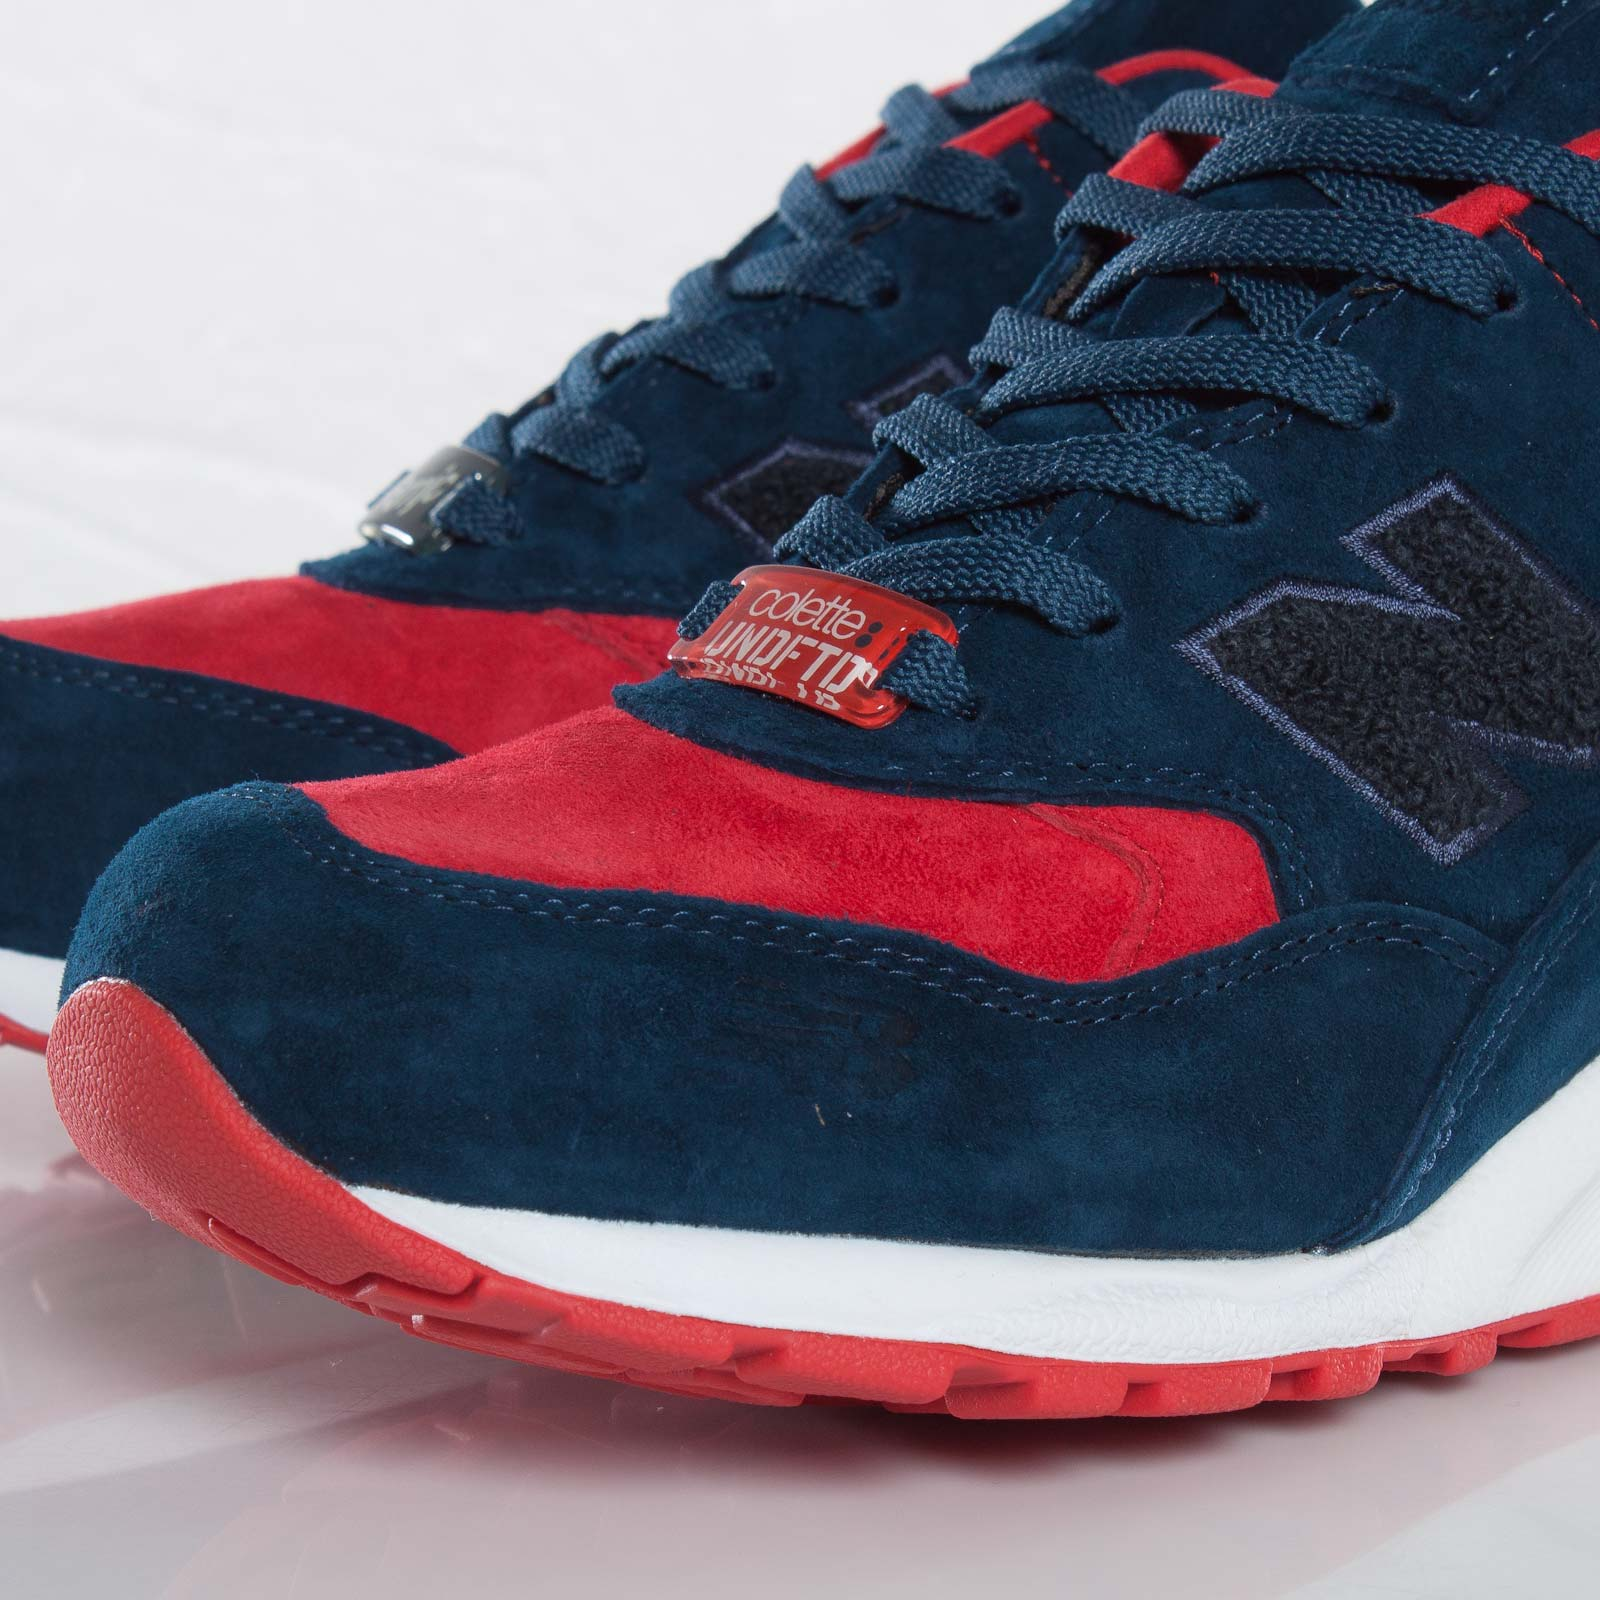 competitive price 631c6 3ceda ... colette x la mjc navy blue red white 81814550 8edcc 069c0  best price new  balance mt580 10ec7 096c6 best price new balance mt580 10ec7 096c6  best  price ...